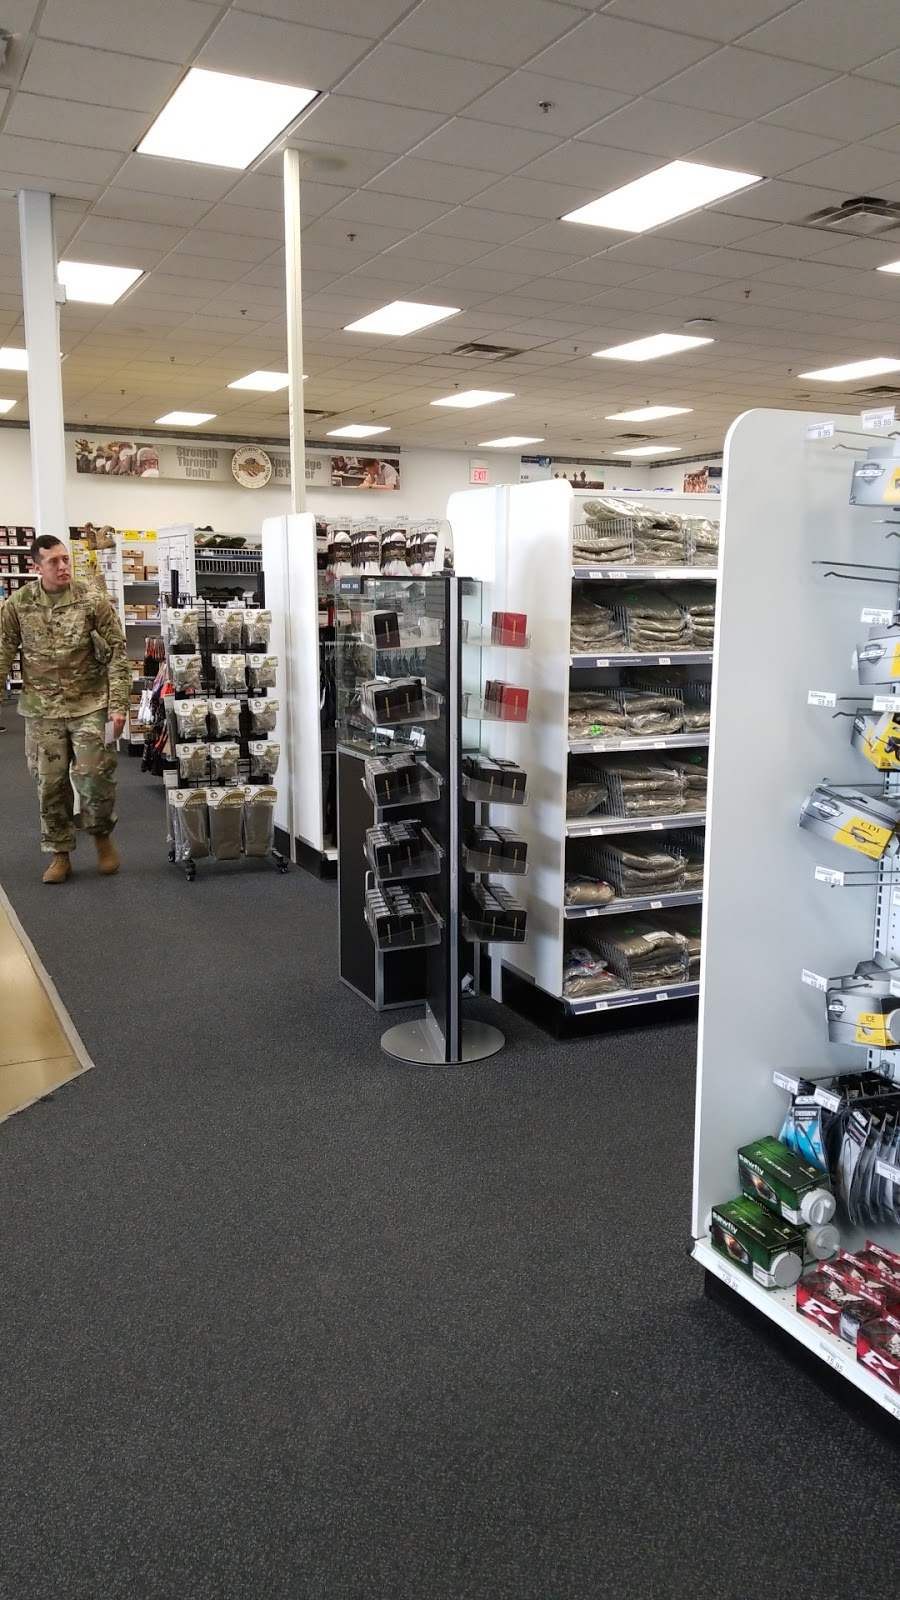 Military Clothing Sales - clothing store  | Photo 1 of 7 | Address: 1614 Pike Rd, Fort Bliss, TX 79906, USA | Phone: (915) 568-2880